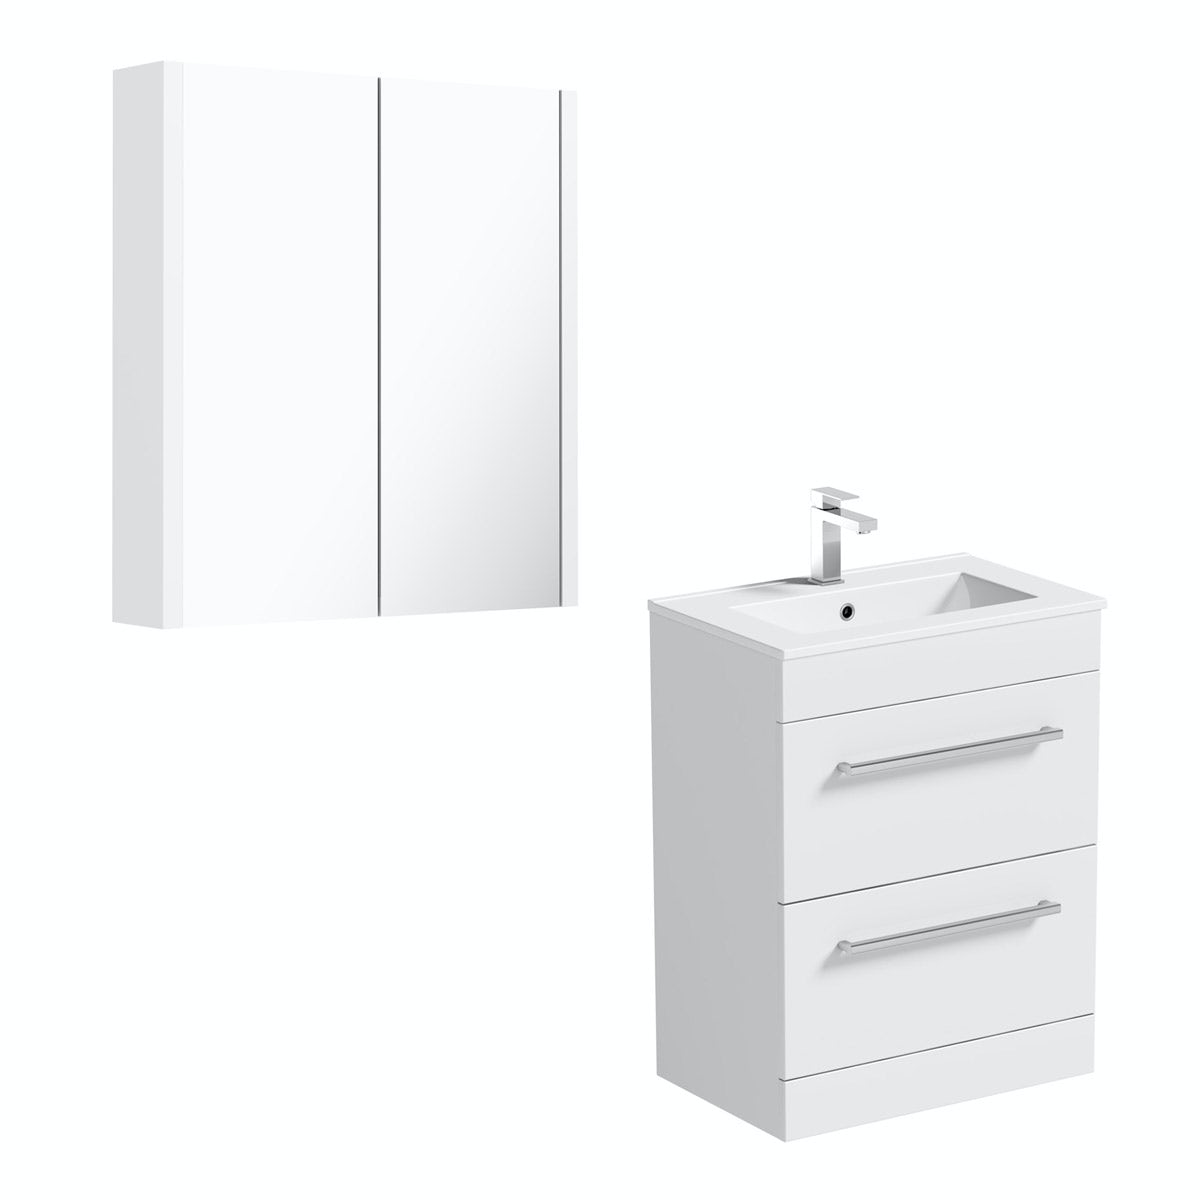 Orchard derwent white floor drawer unit 600mm and mirror for Mirrored drawer unit